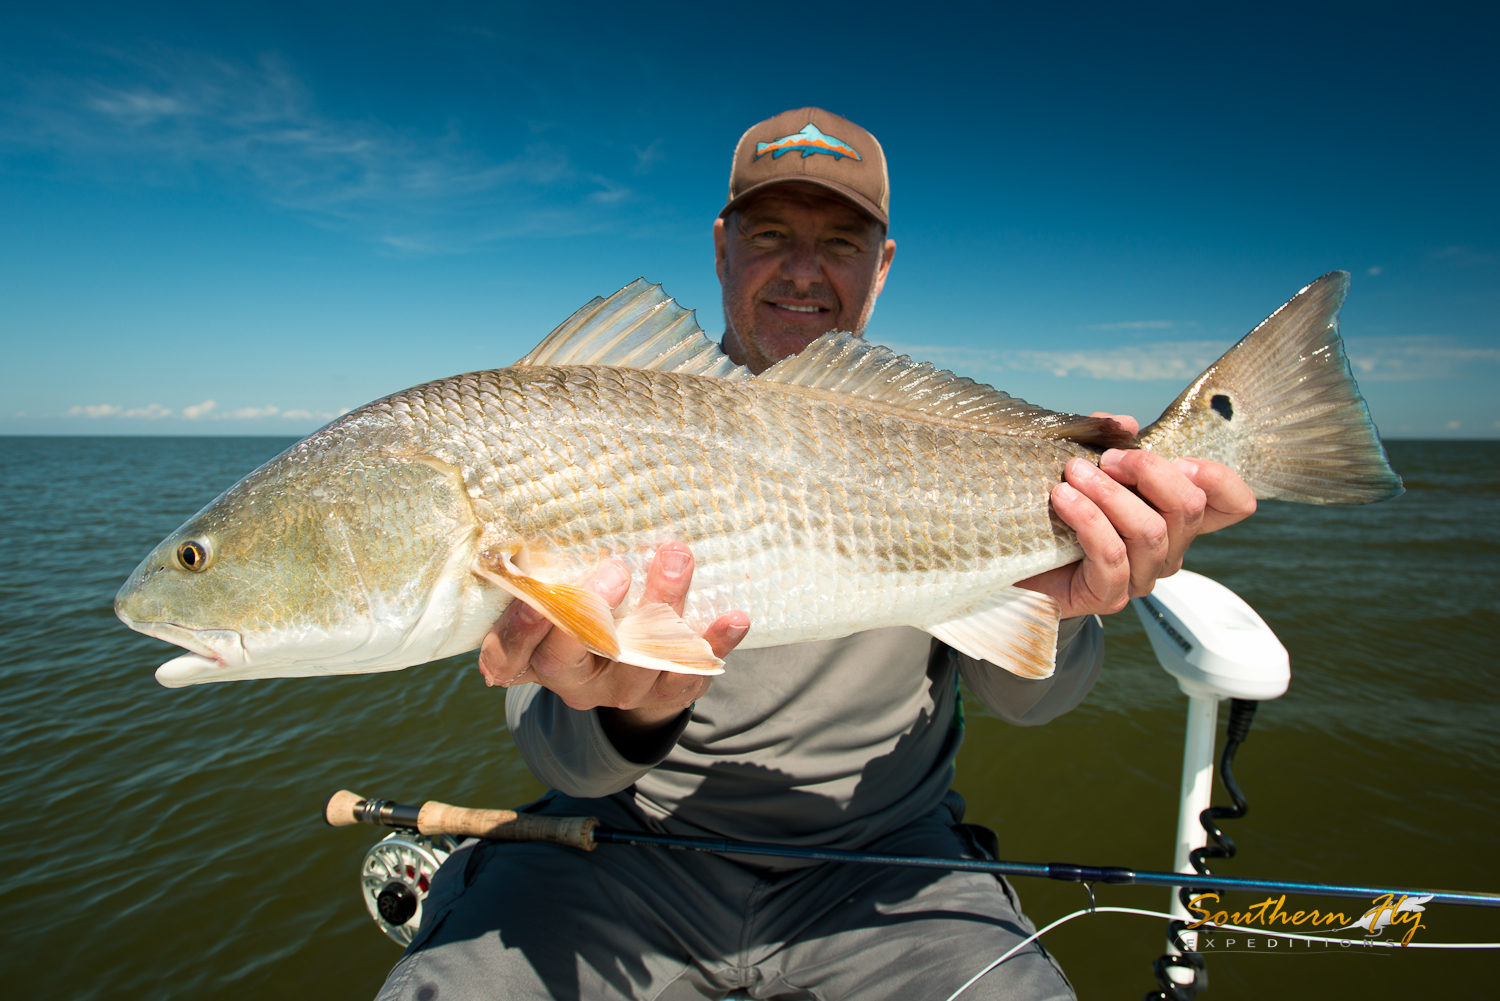 Southern Fly Expeditions Redfish Fishing guide new orleans louisiana